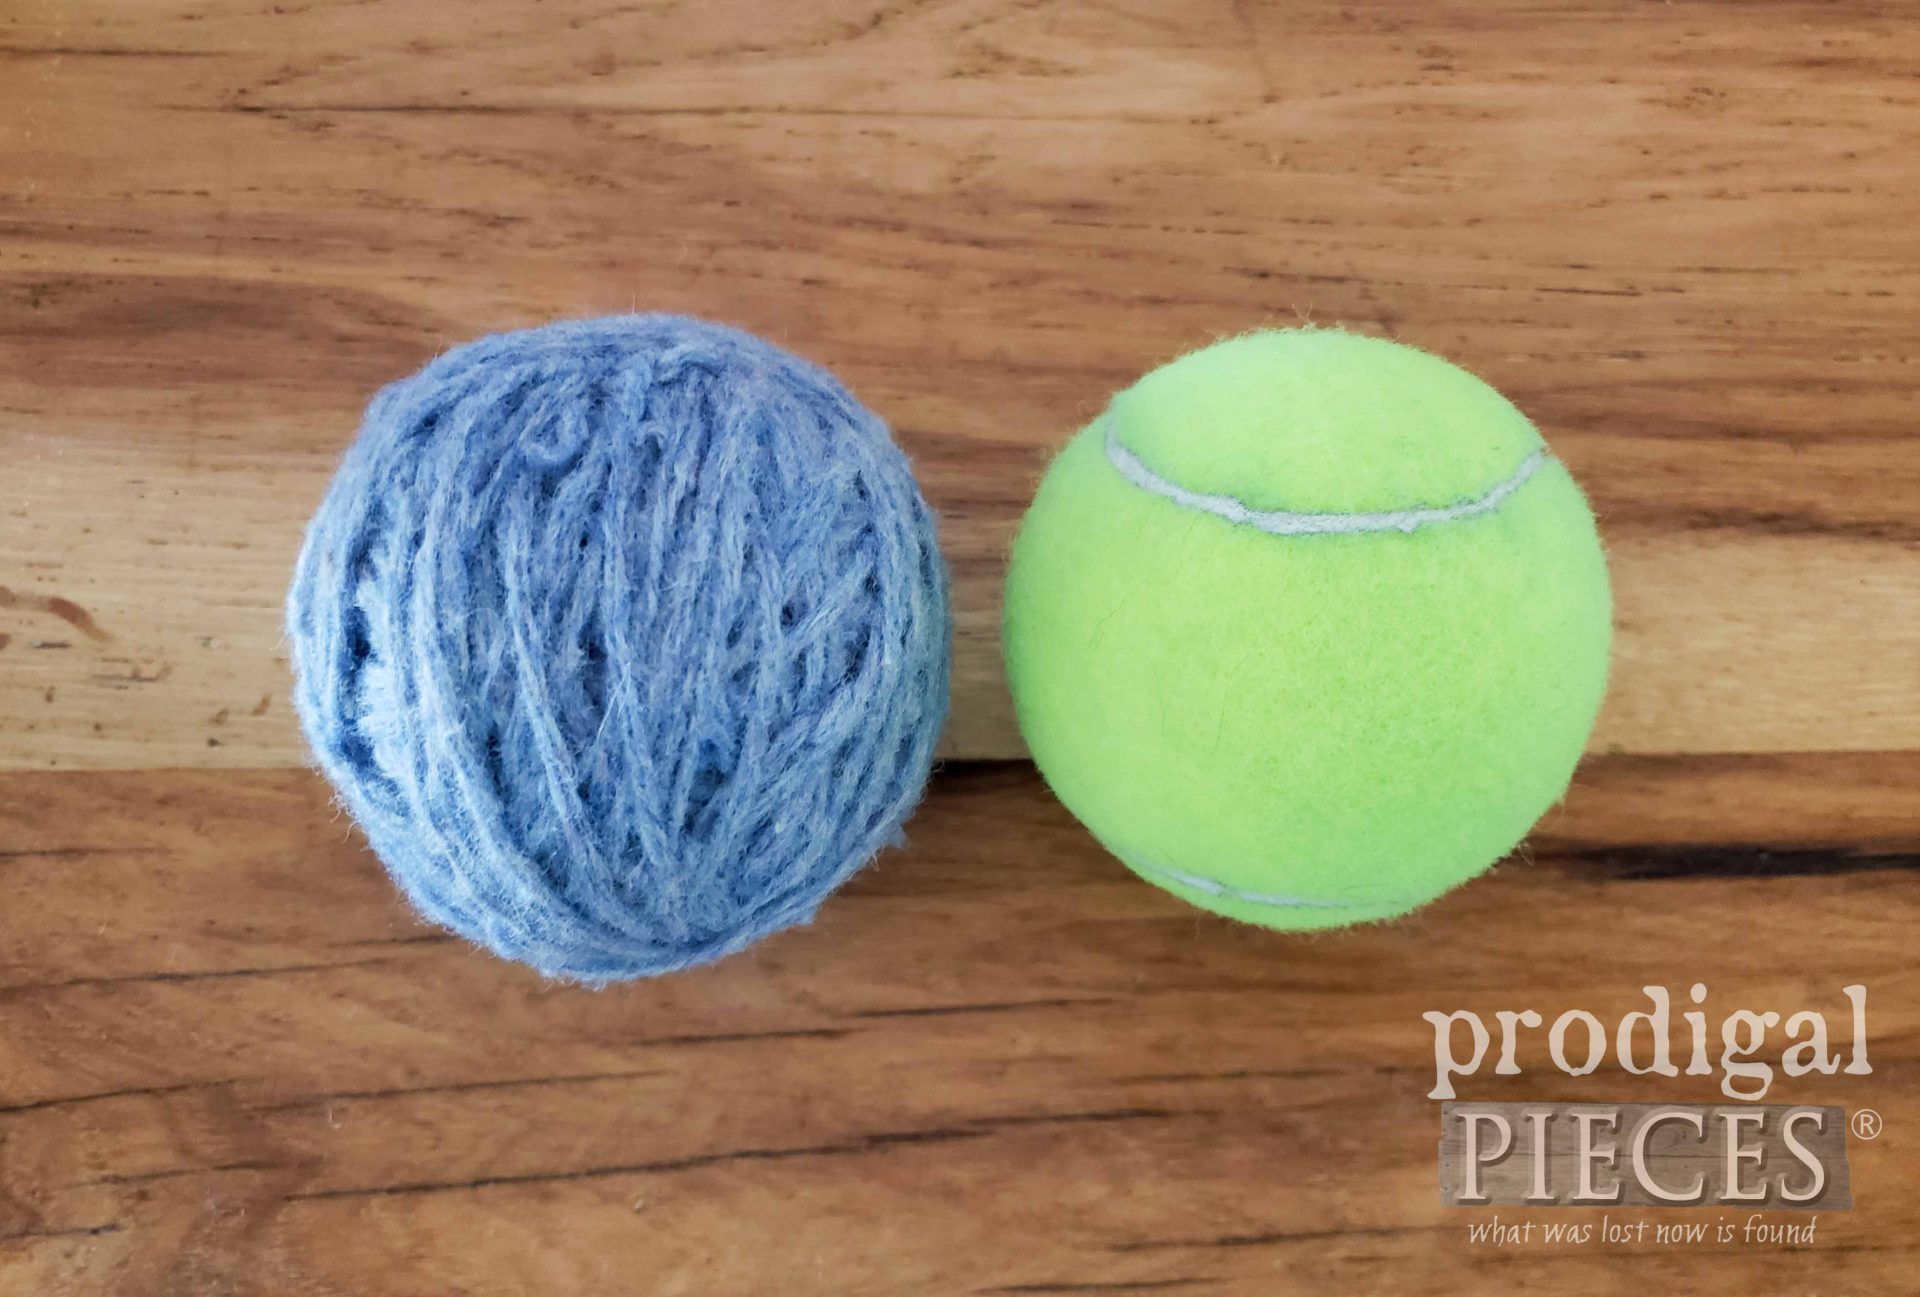 DIY Dryer Ball Size | prodigalpieces.com